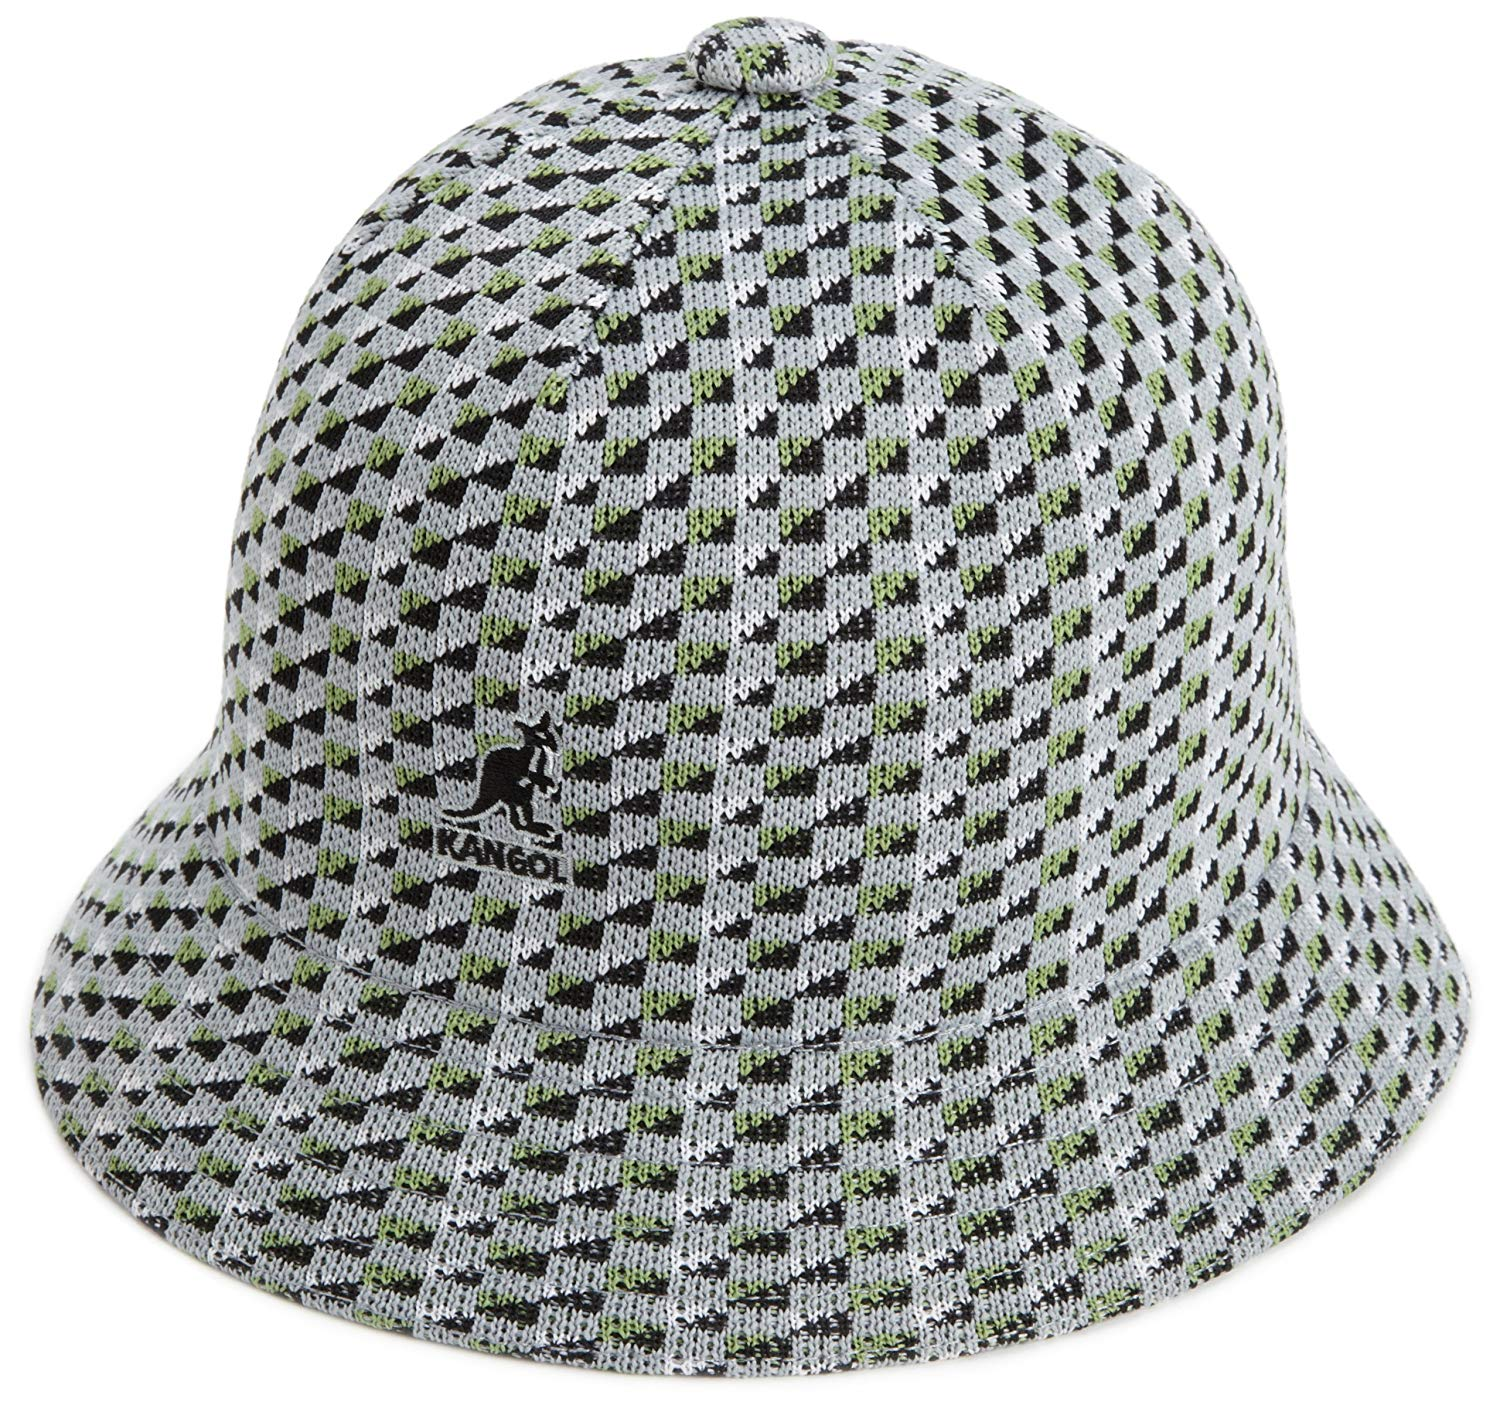 291ef383fb312 Cheap Kids Kangol Hats, find Kids Kangol Hats deals on line at ...